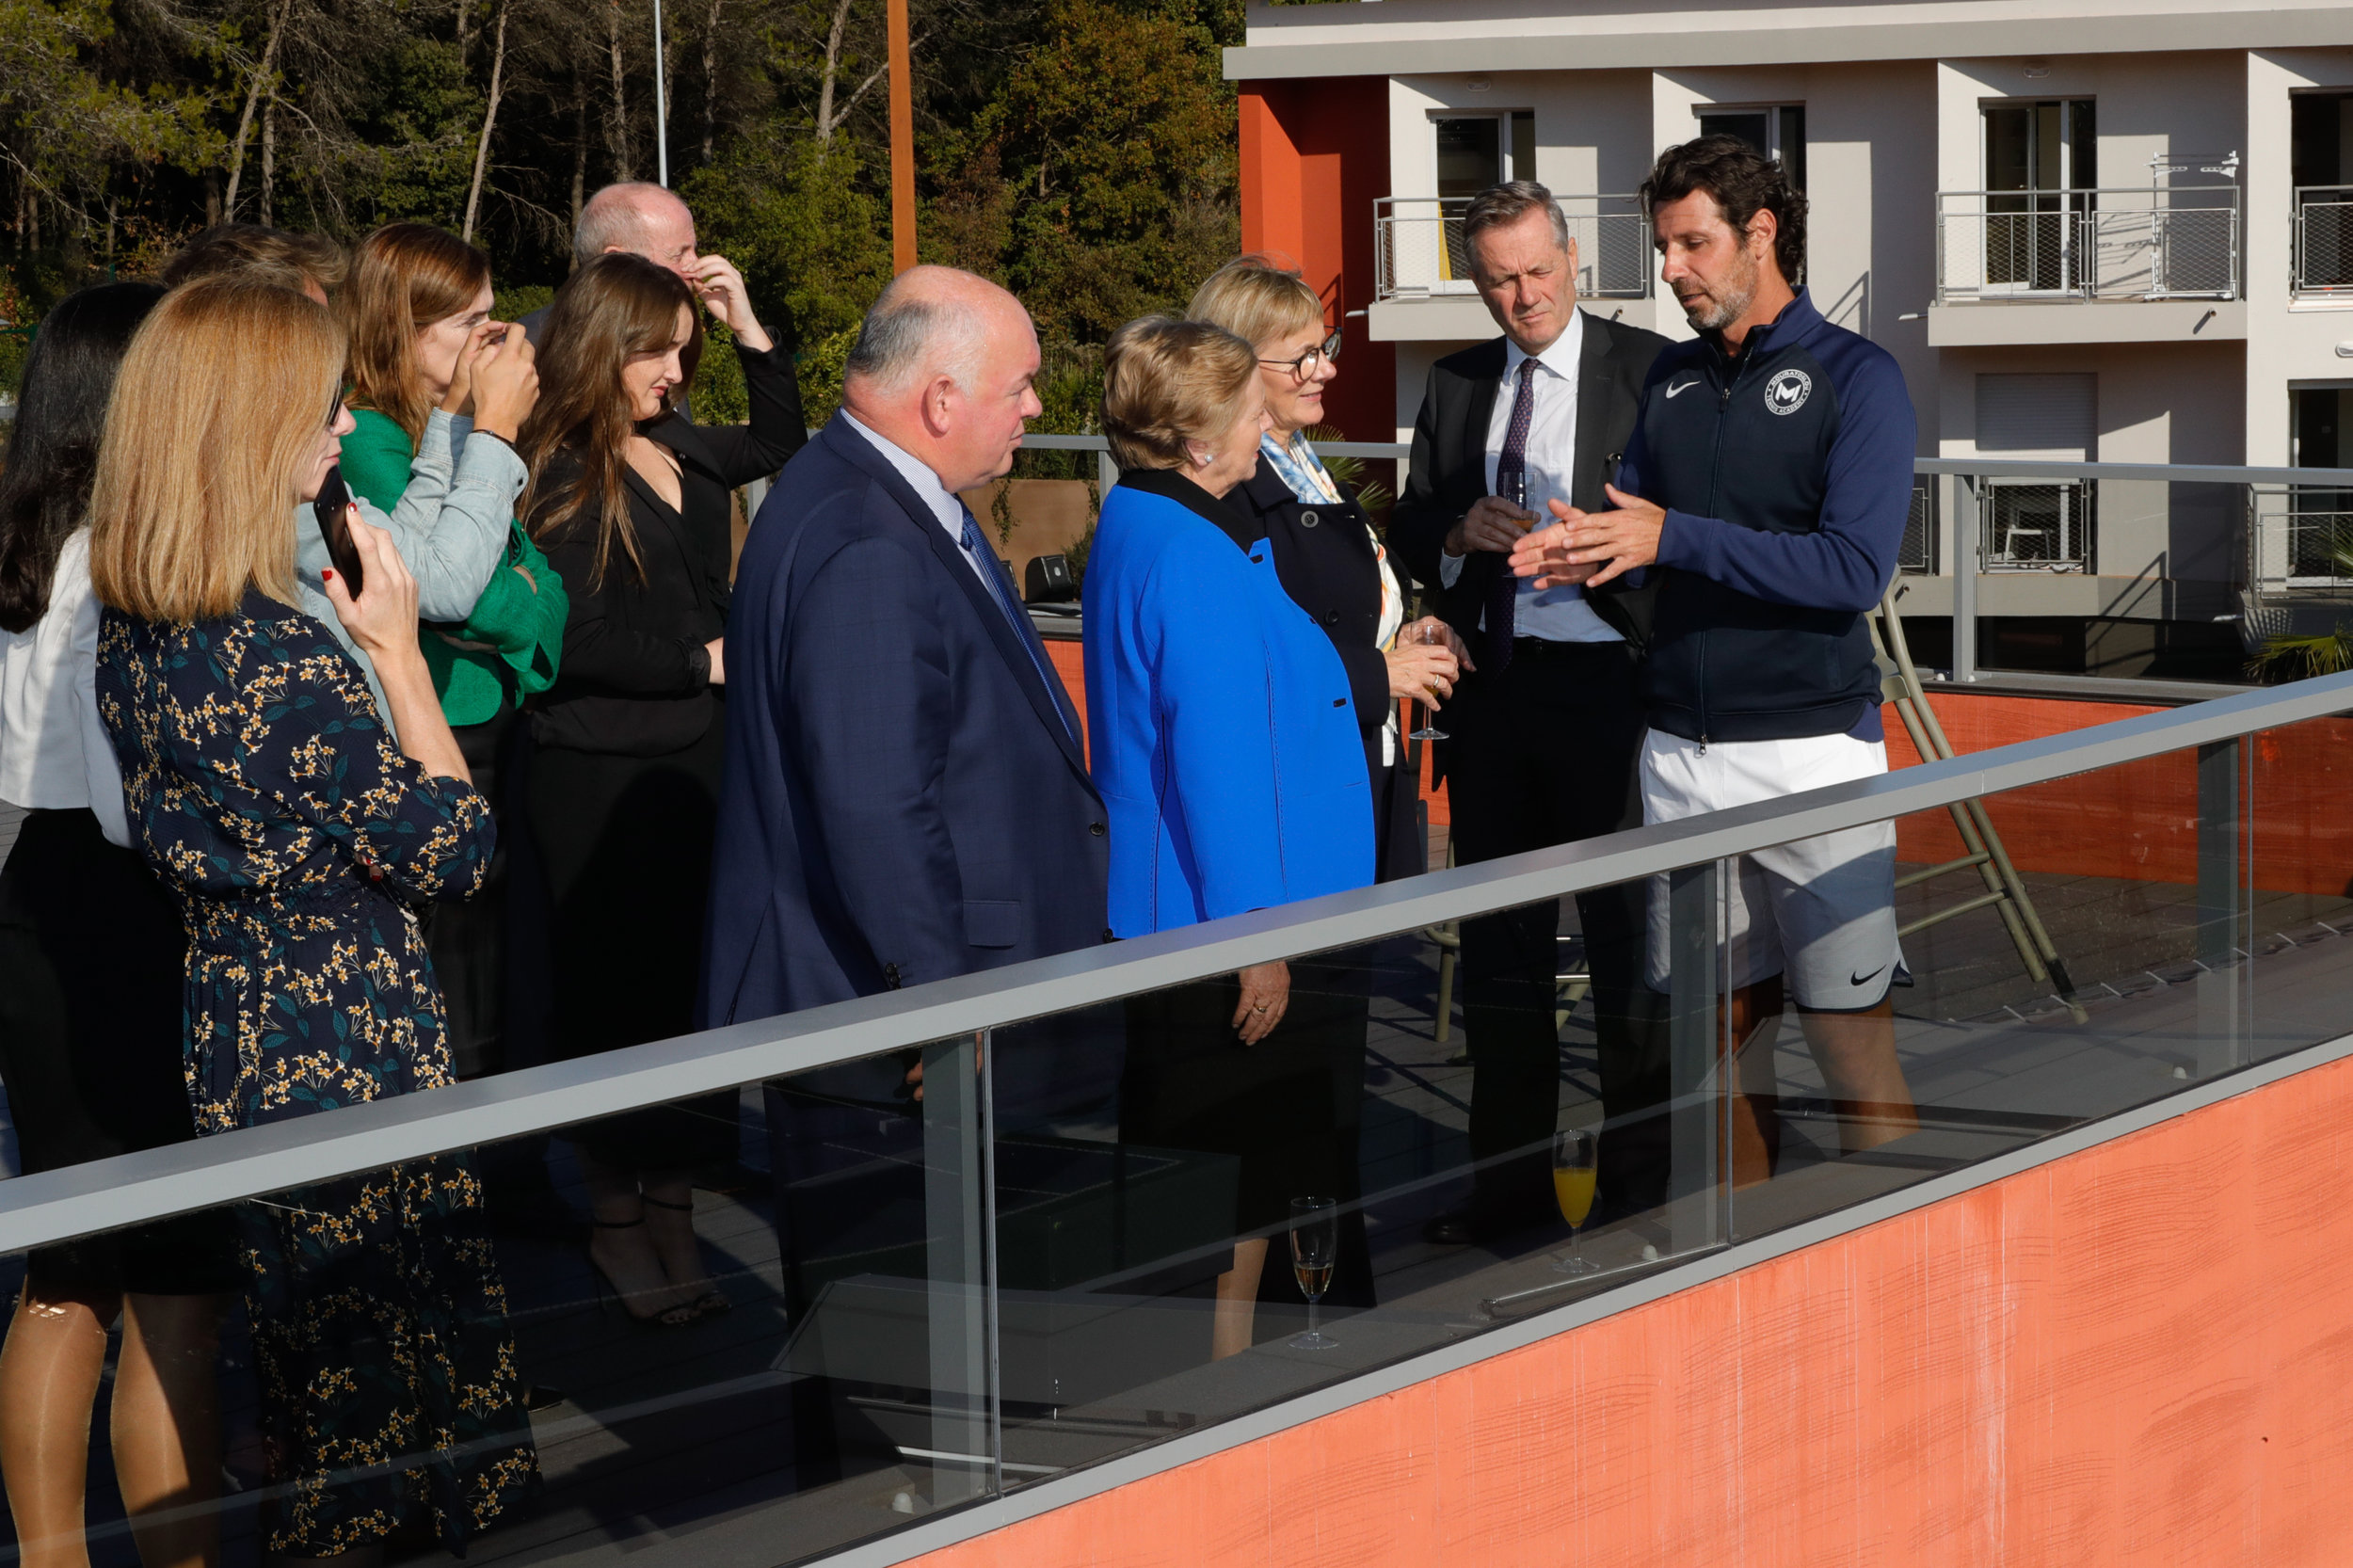 Patrick Mouratoglou and the presentation of the Mouratoglou Tennis Academy to the Irish delegation